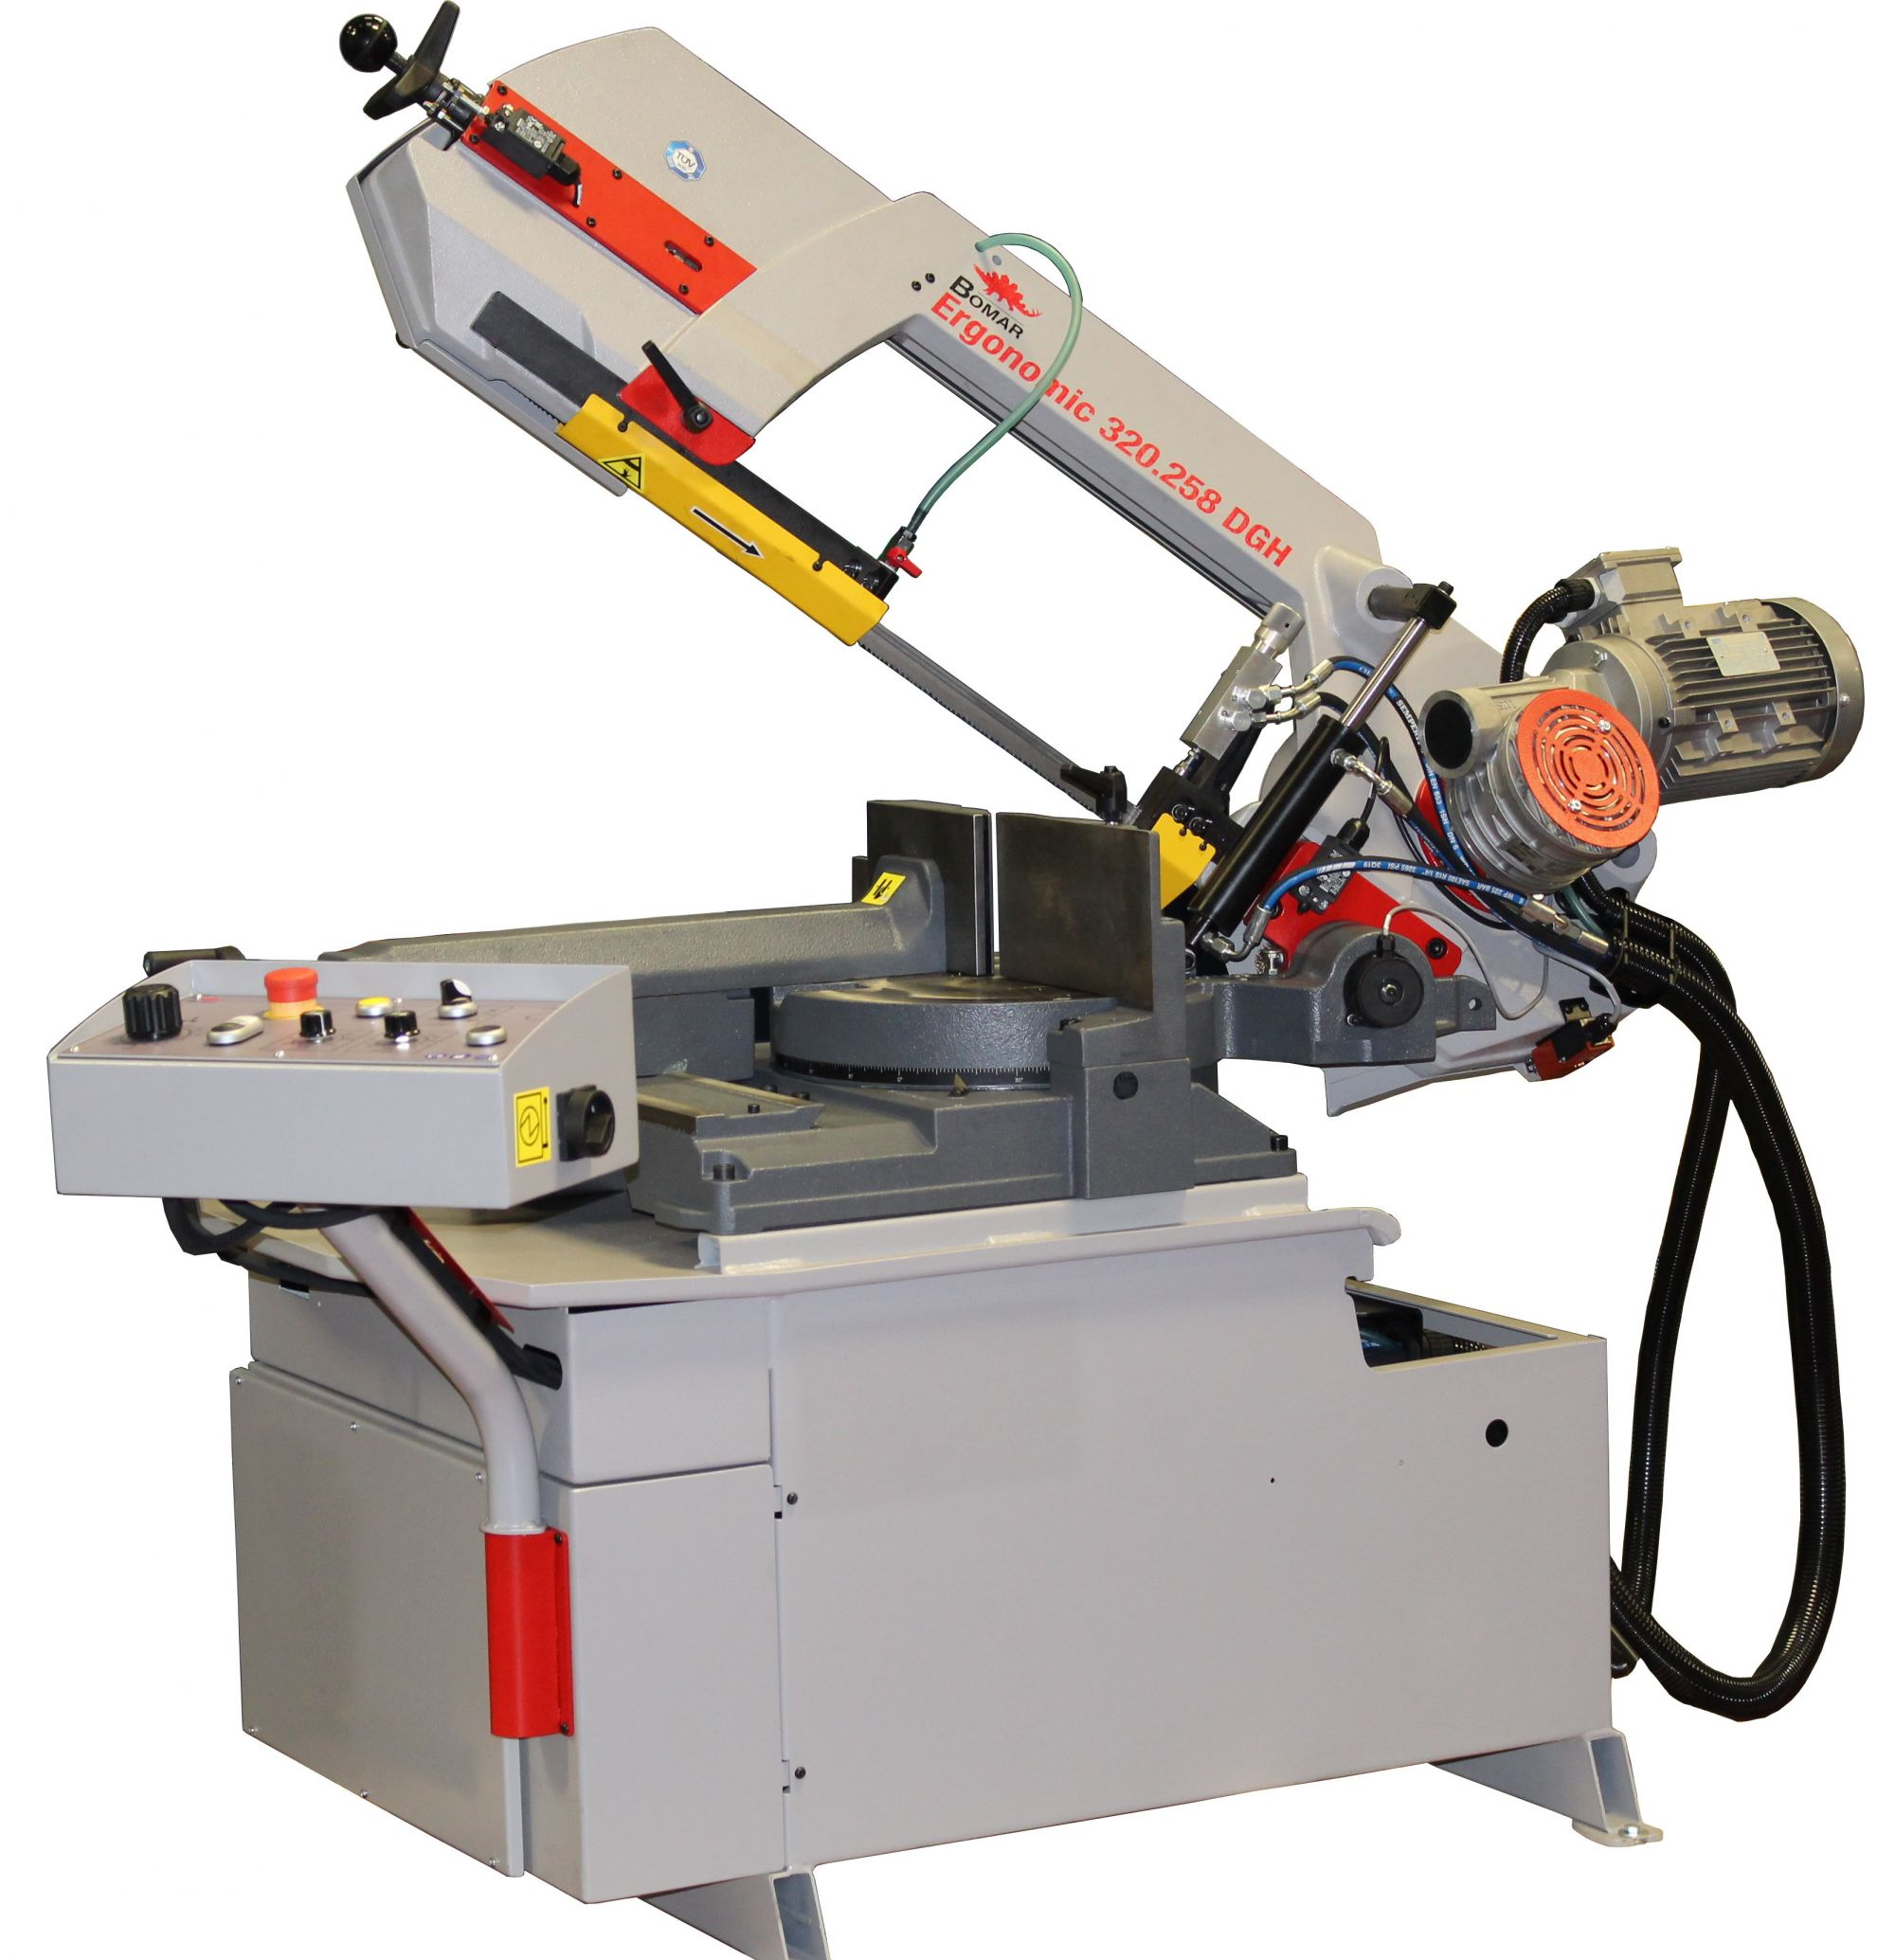 SDE 320.258DGH Semi-Automatic Bandsaw